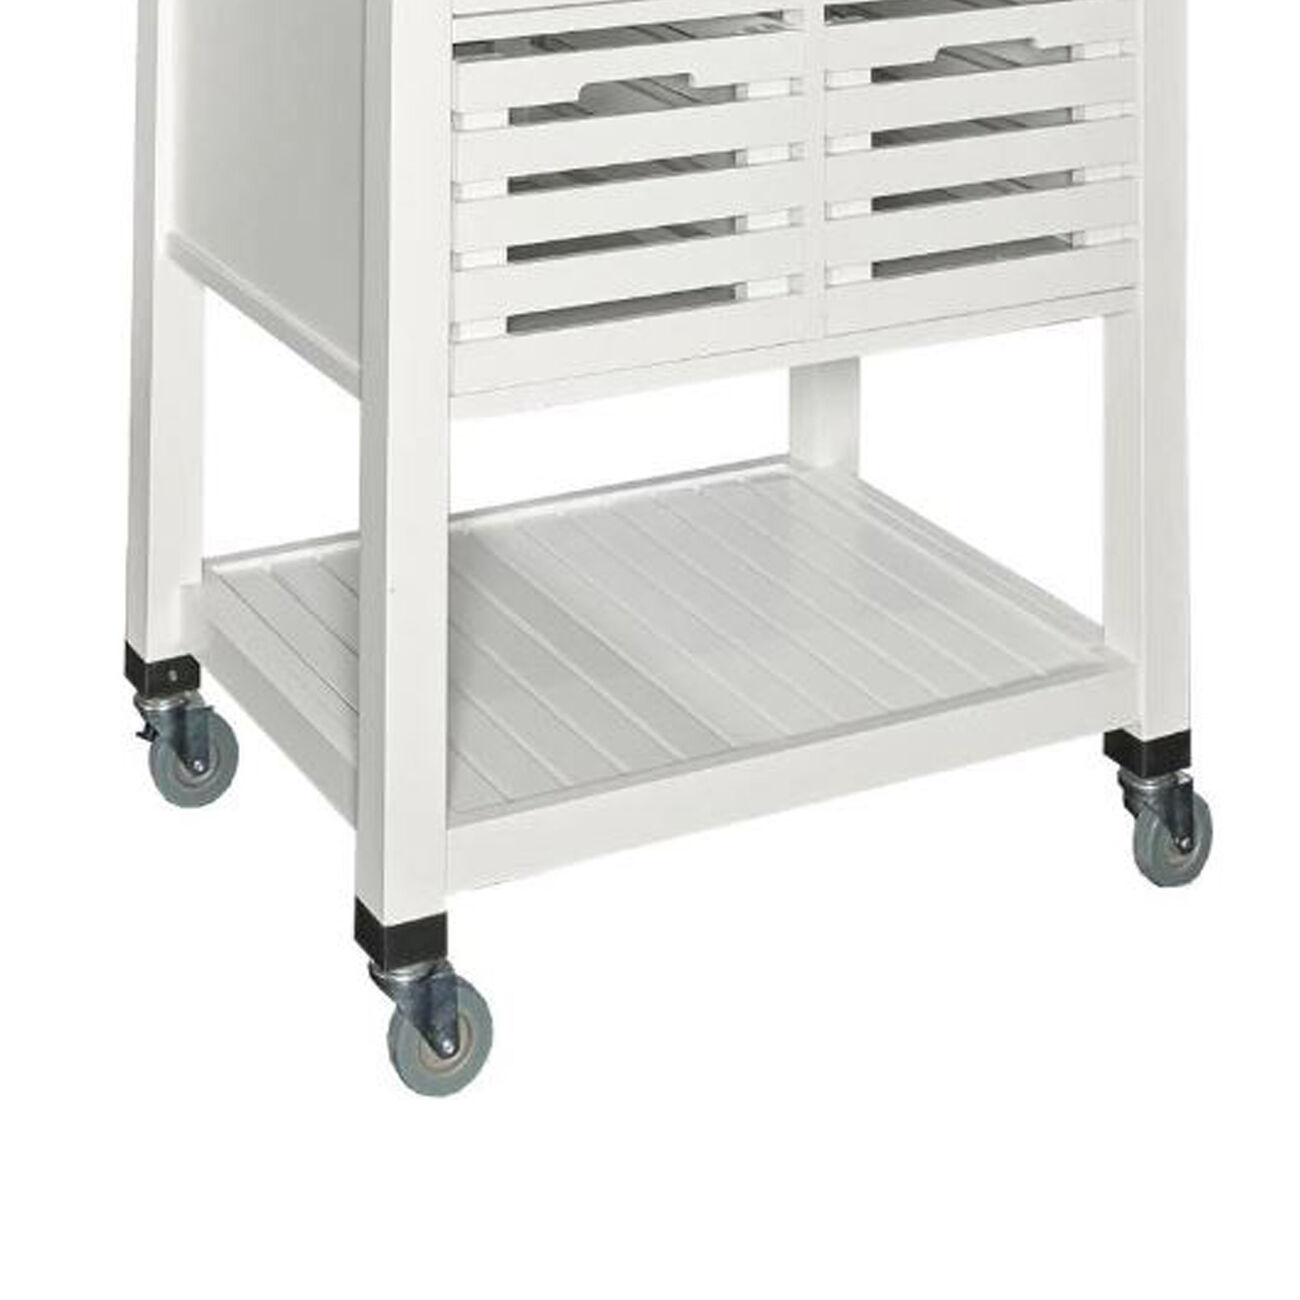 Wooden Kitchen Cart with Caster Wheels and 4 Drawers, White and Silver